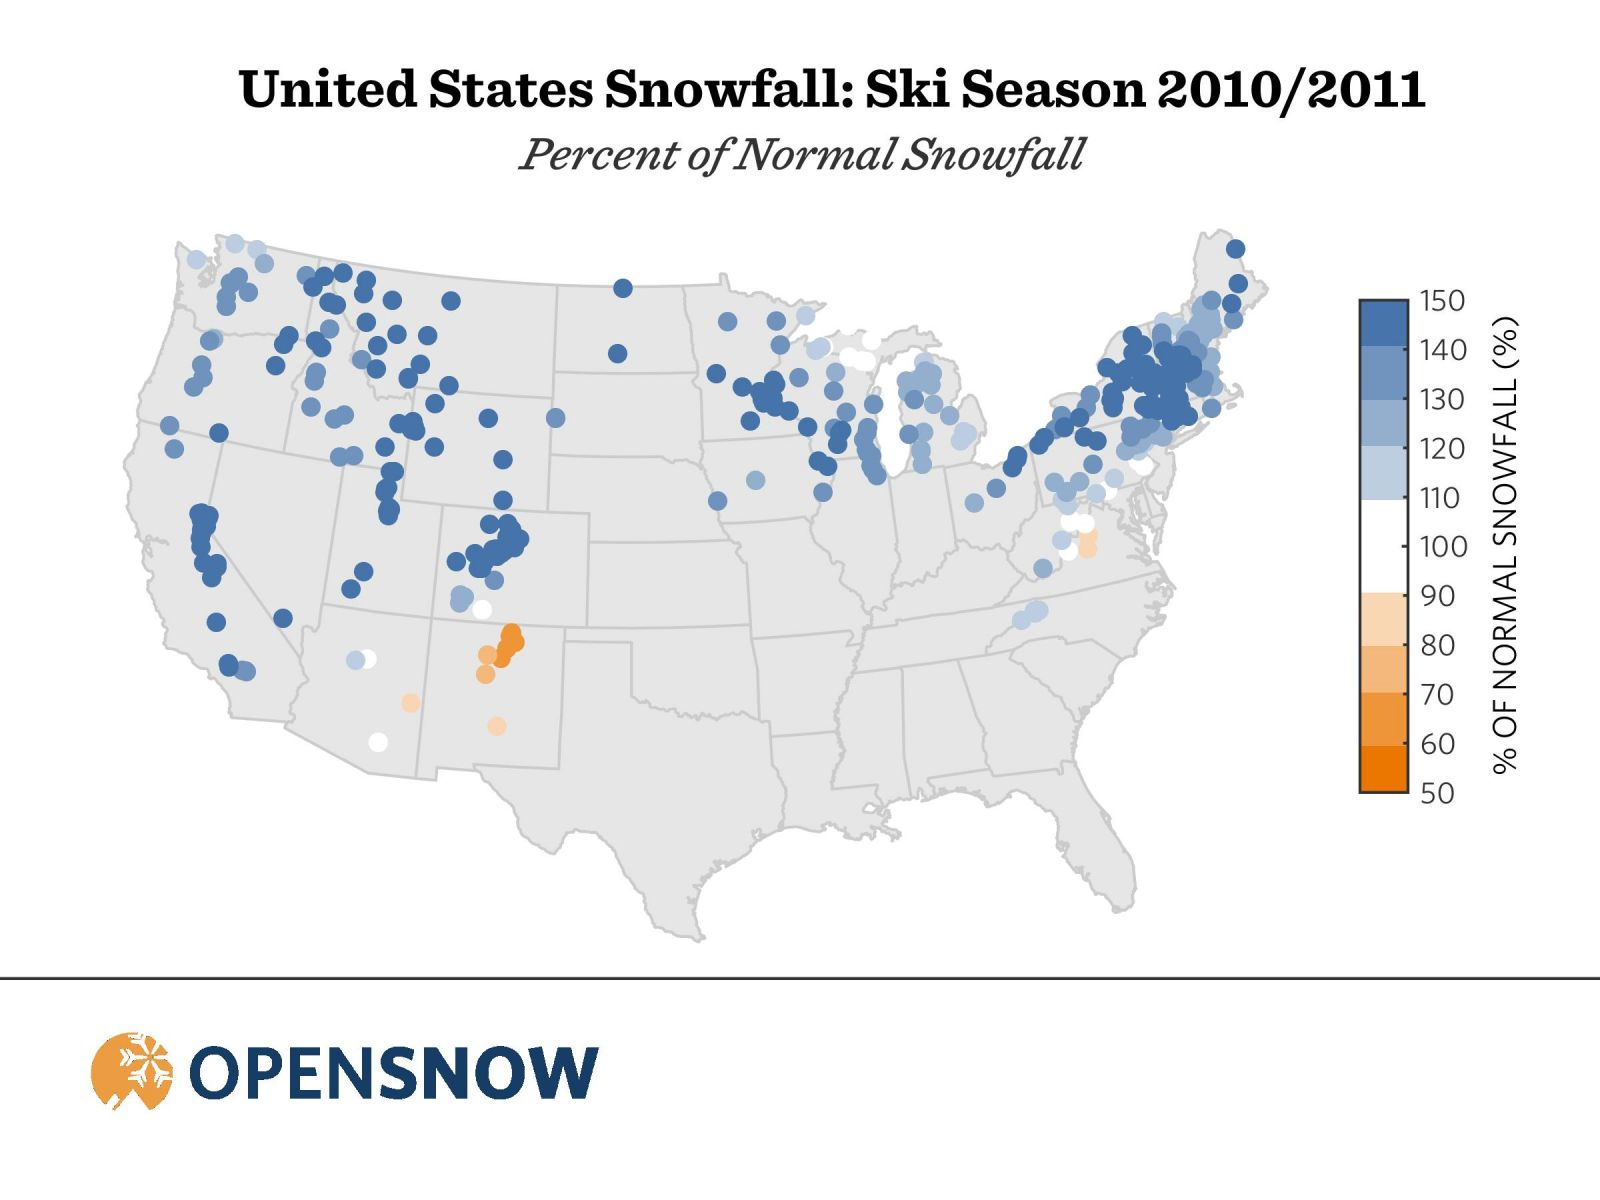 United States Snowfall: Ski Season 2010-2011